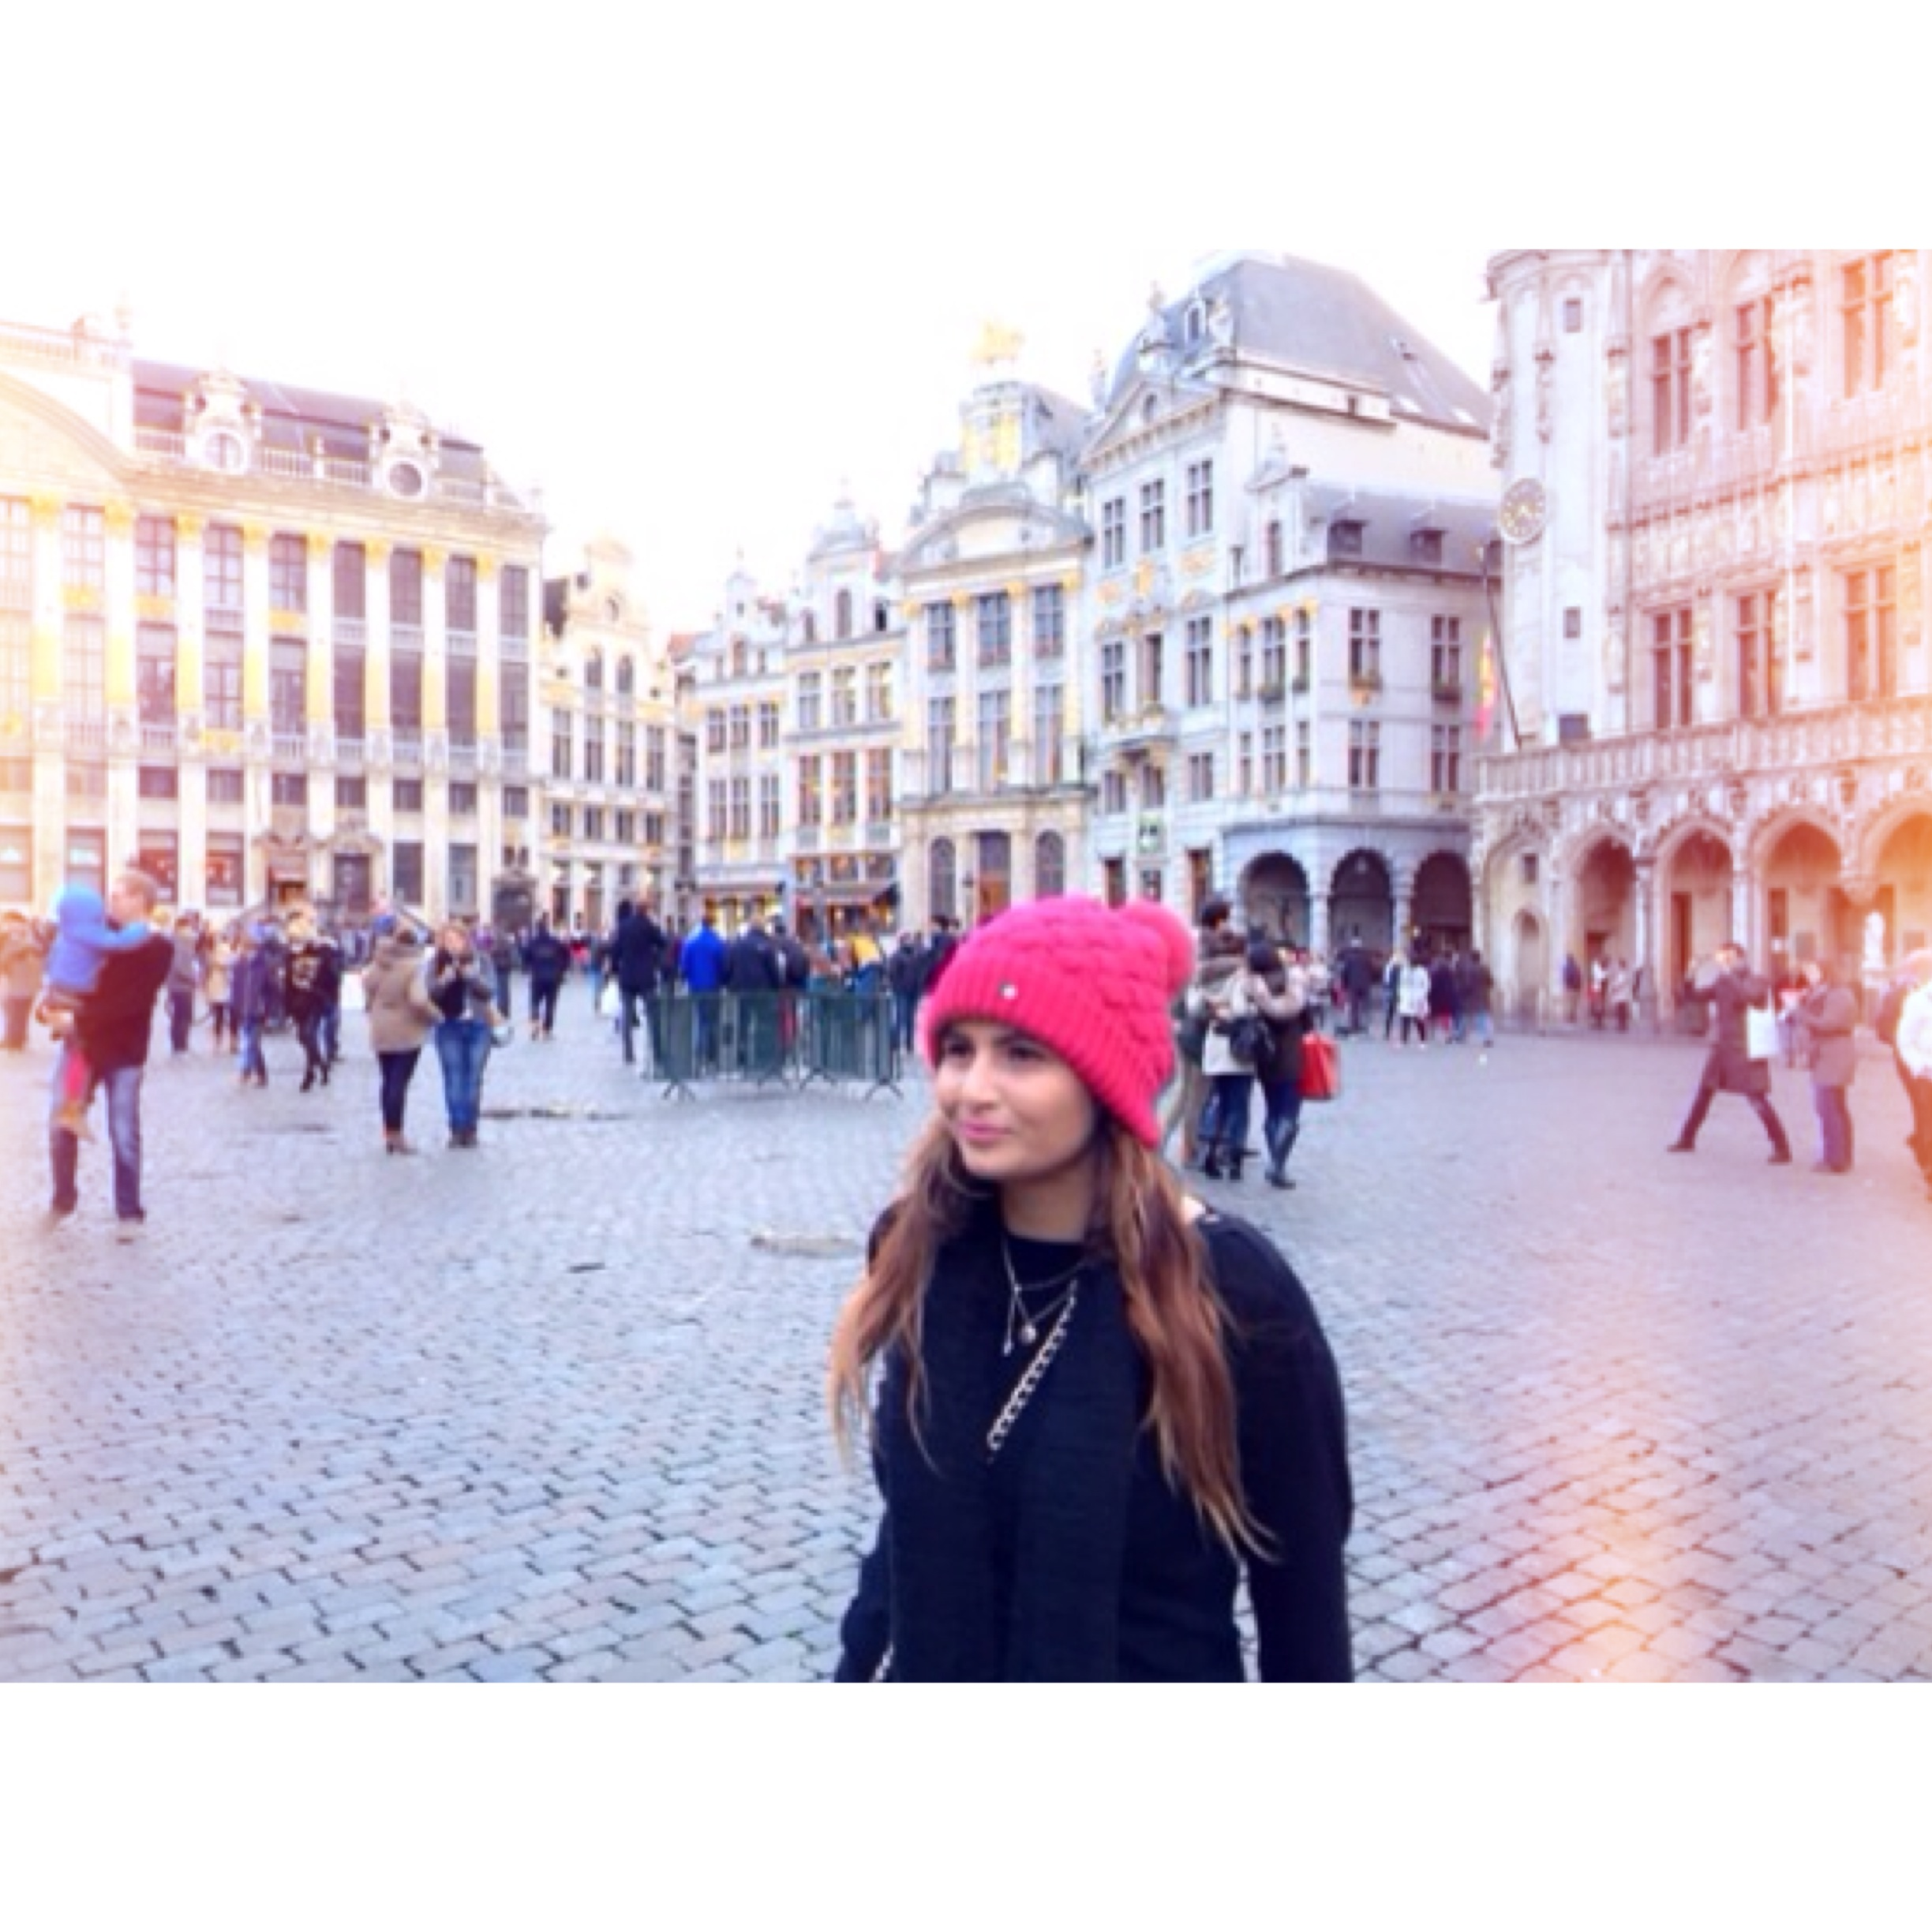 La Grand Place, for the love of architecture and public spaces!